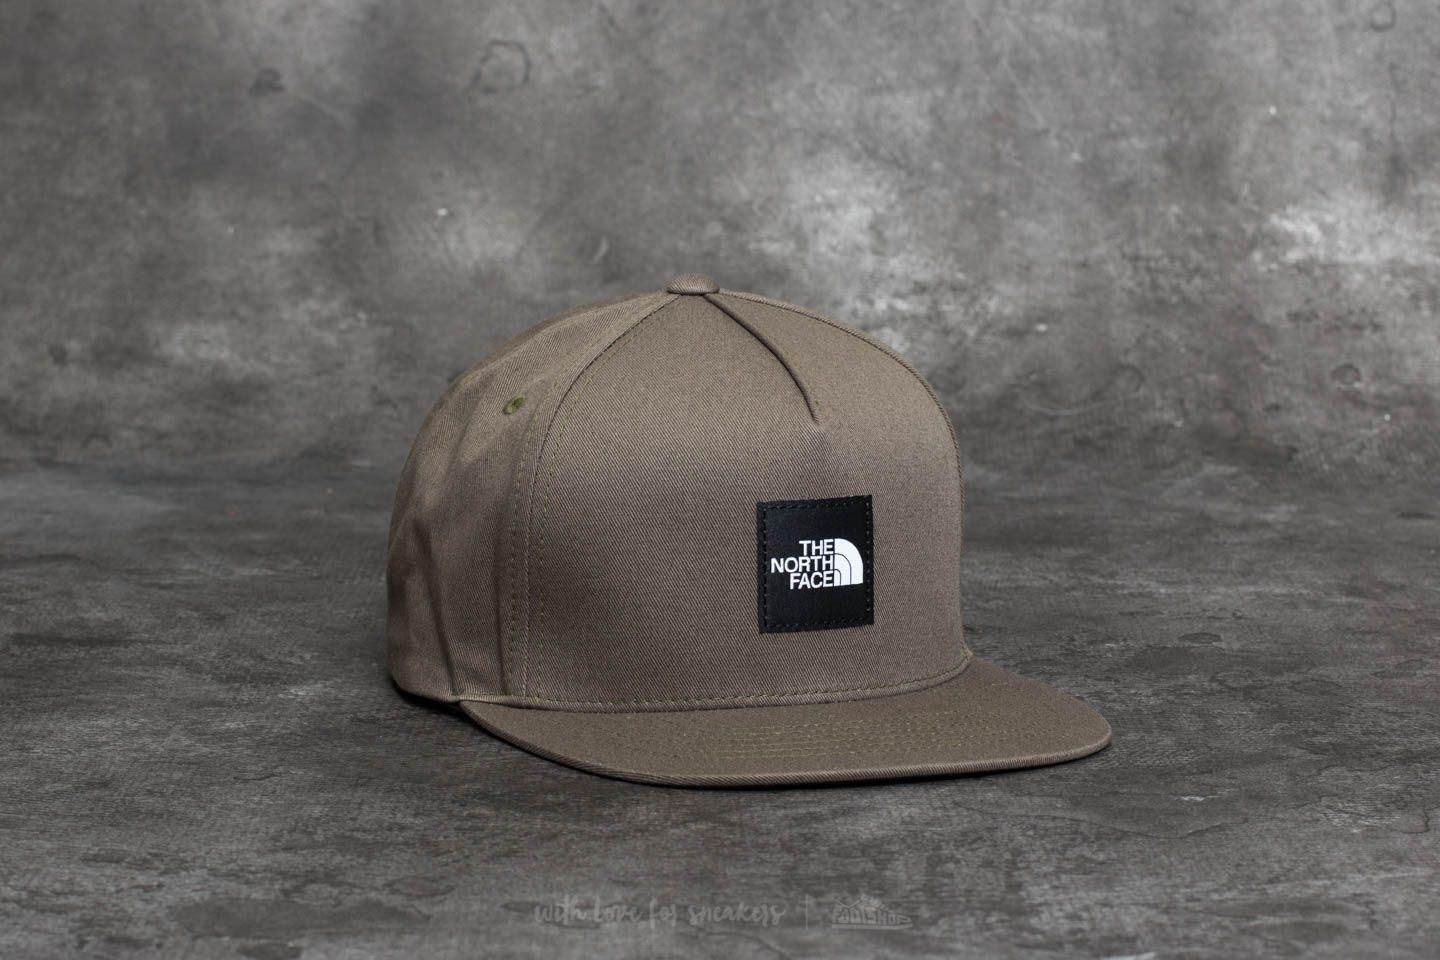 32e71f60706 Lyst - Footshop The North Face Street Ball Cap New Taupe Green  Tnf ...